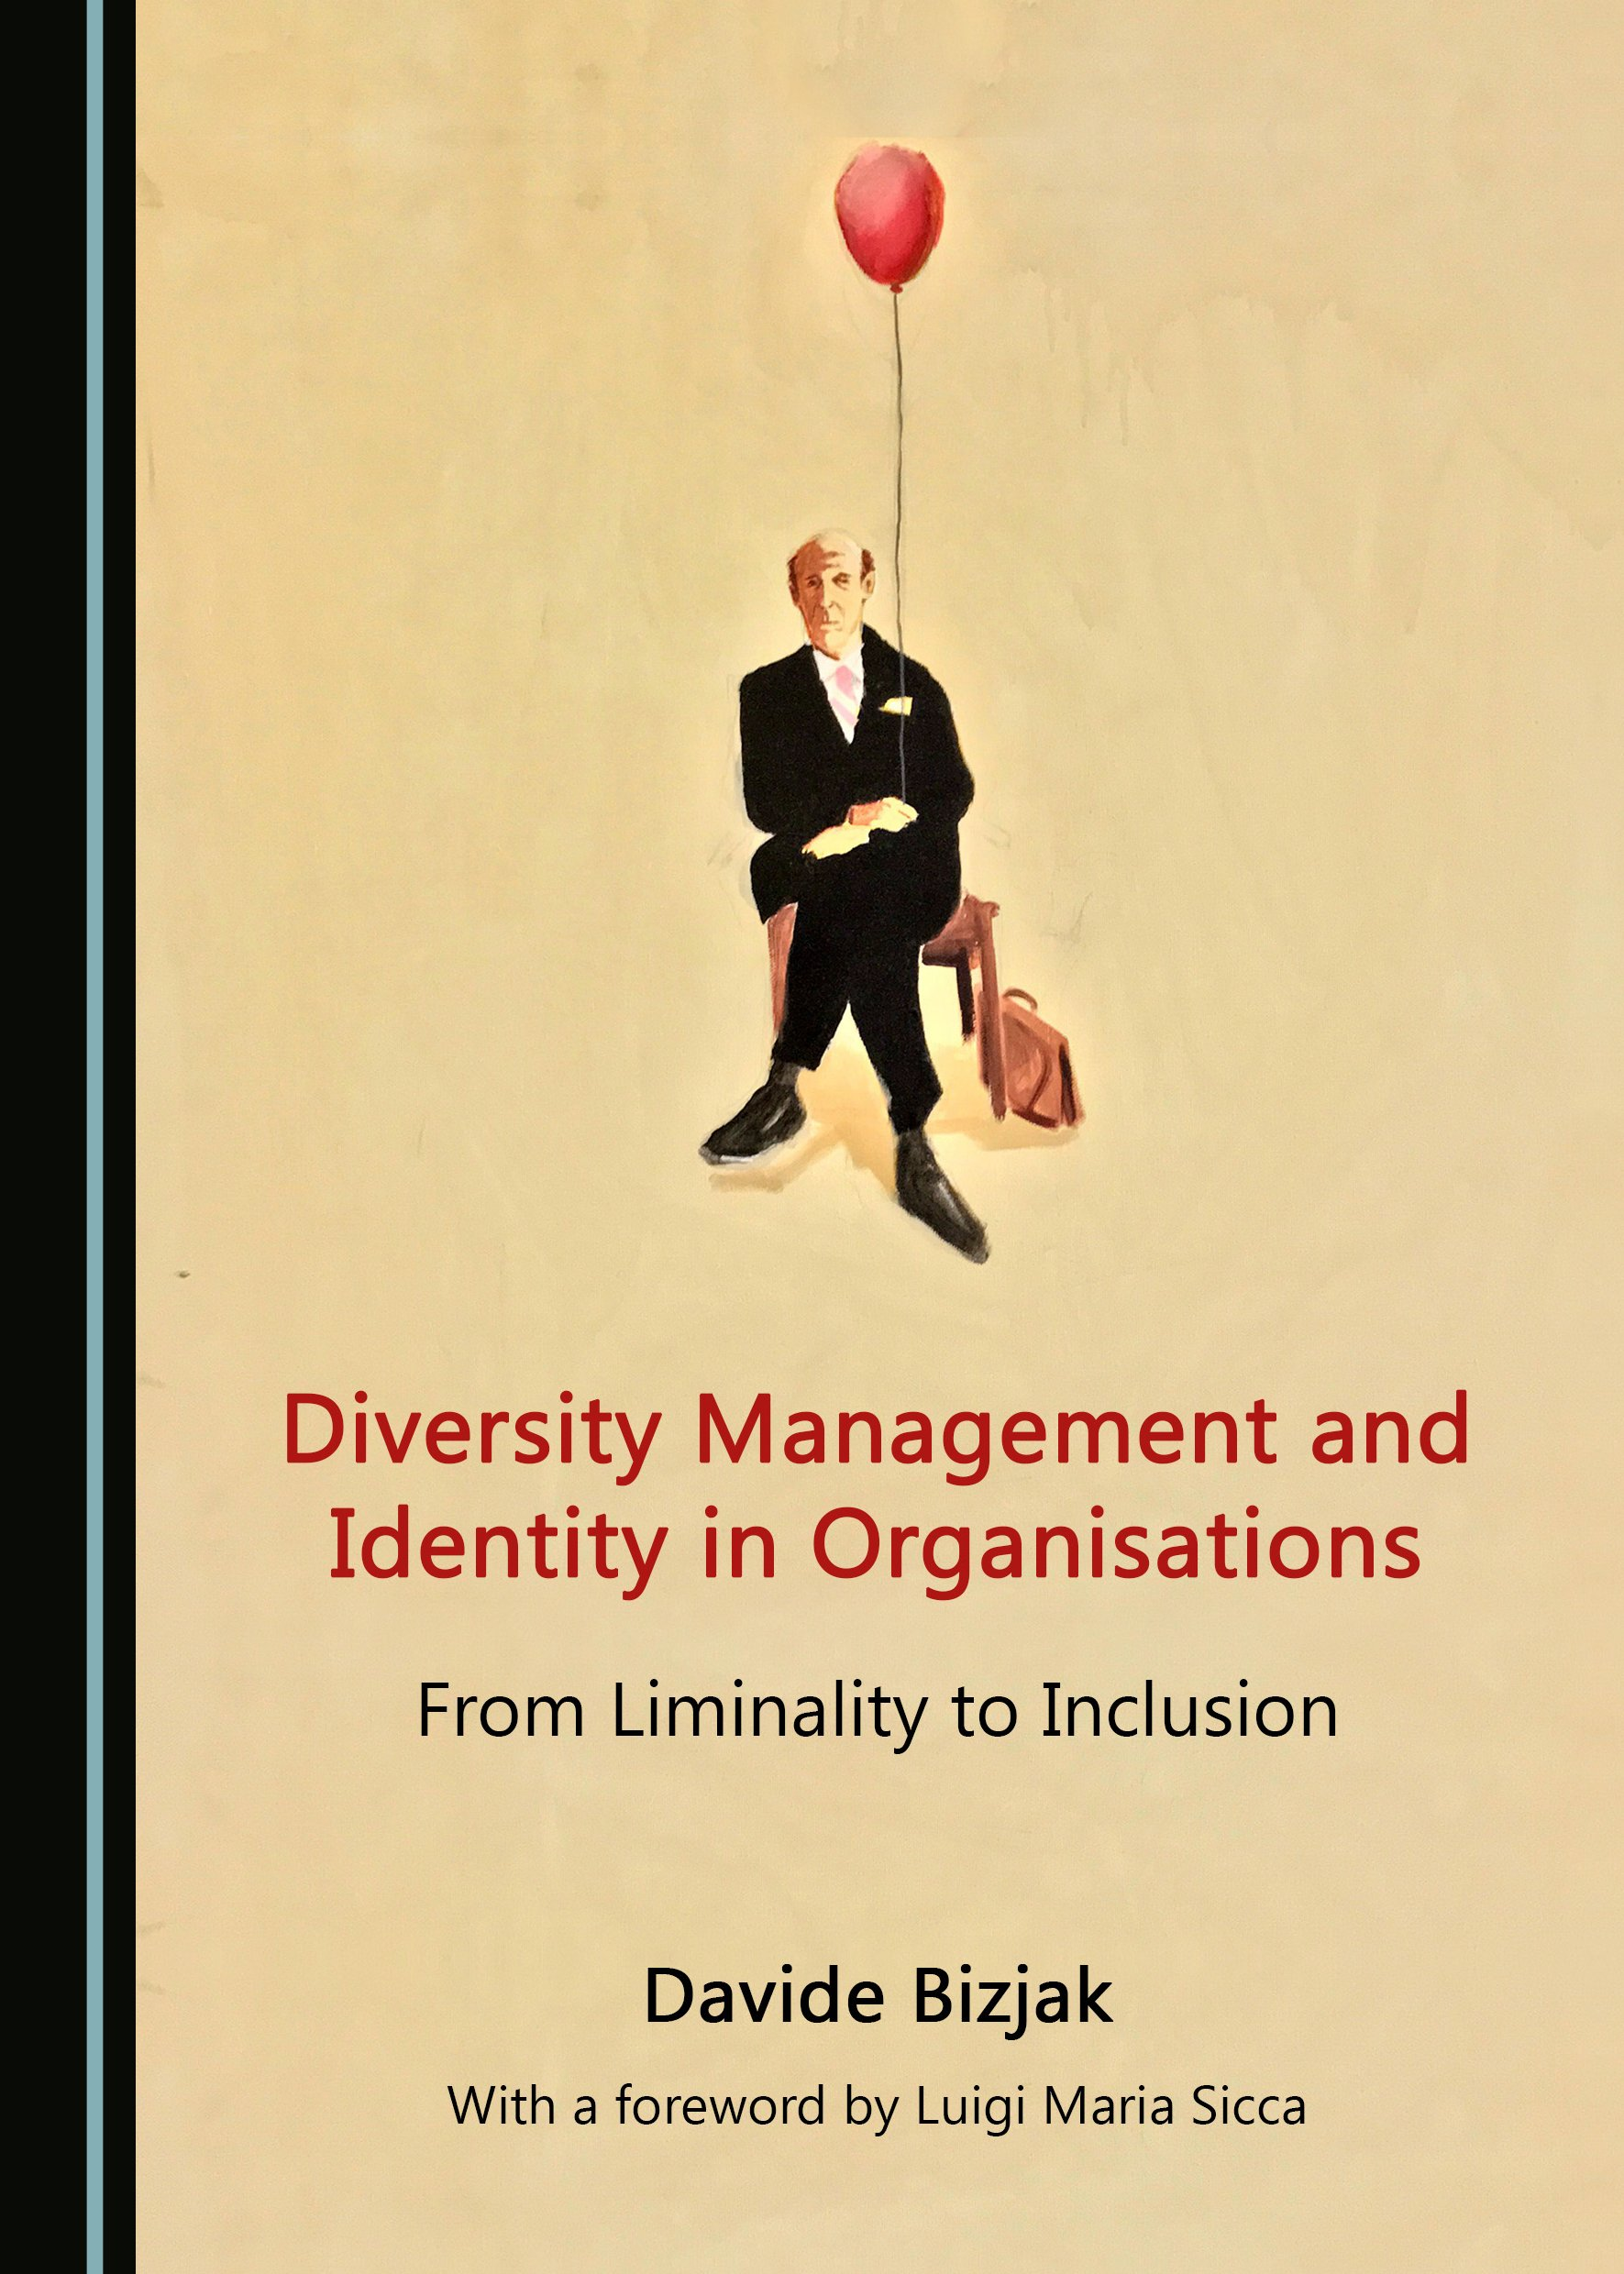 Diversity Management and Identity in Organisations: From Liminality to Inclusion